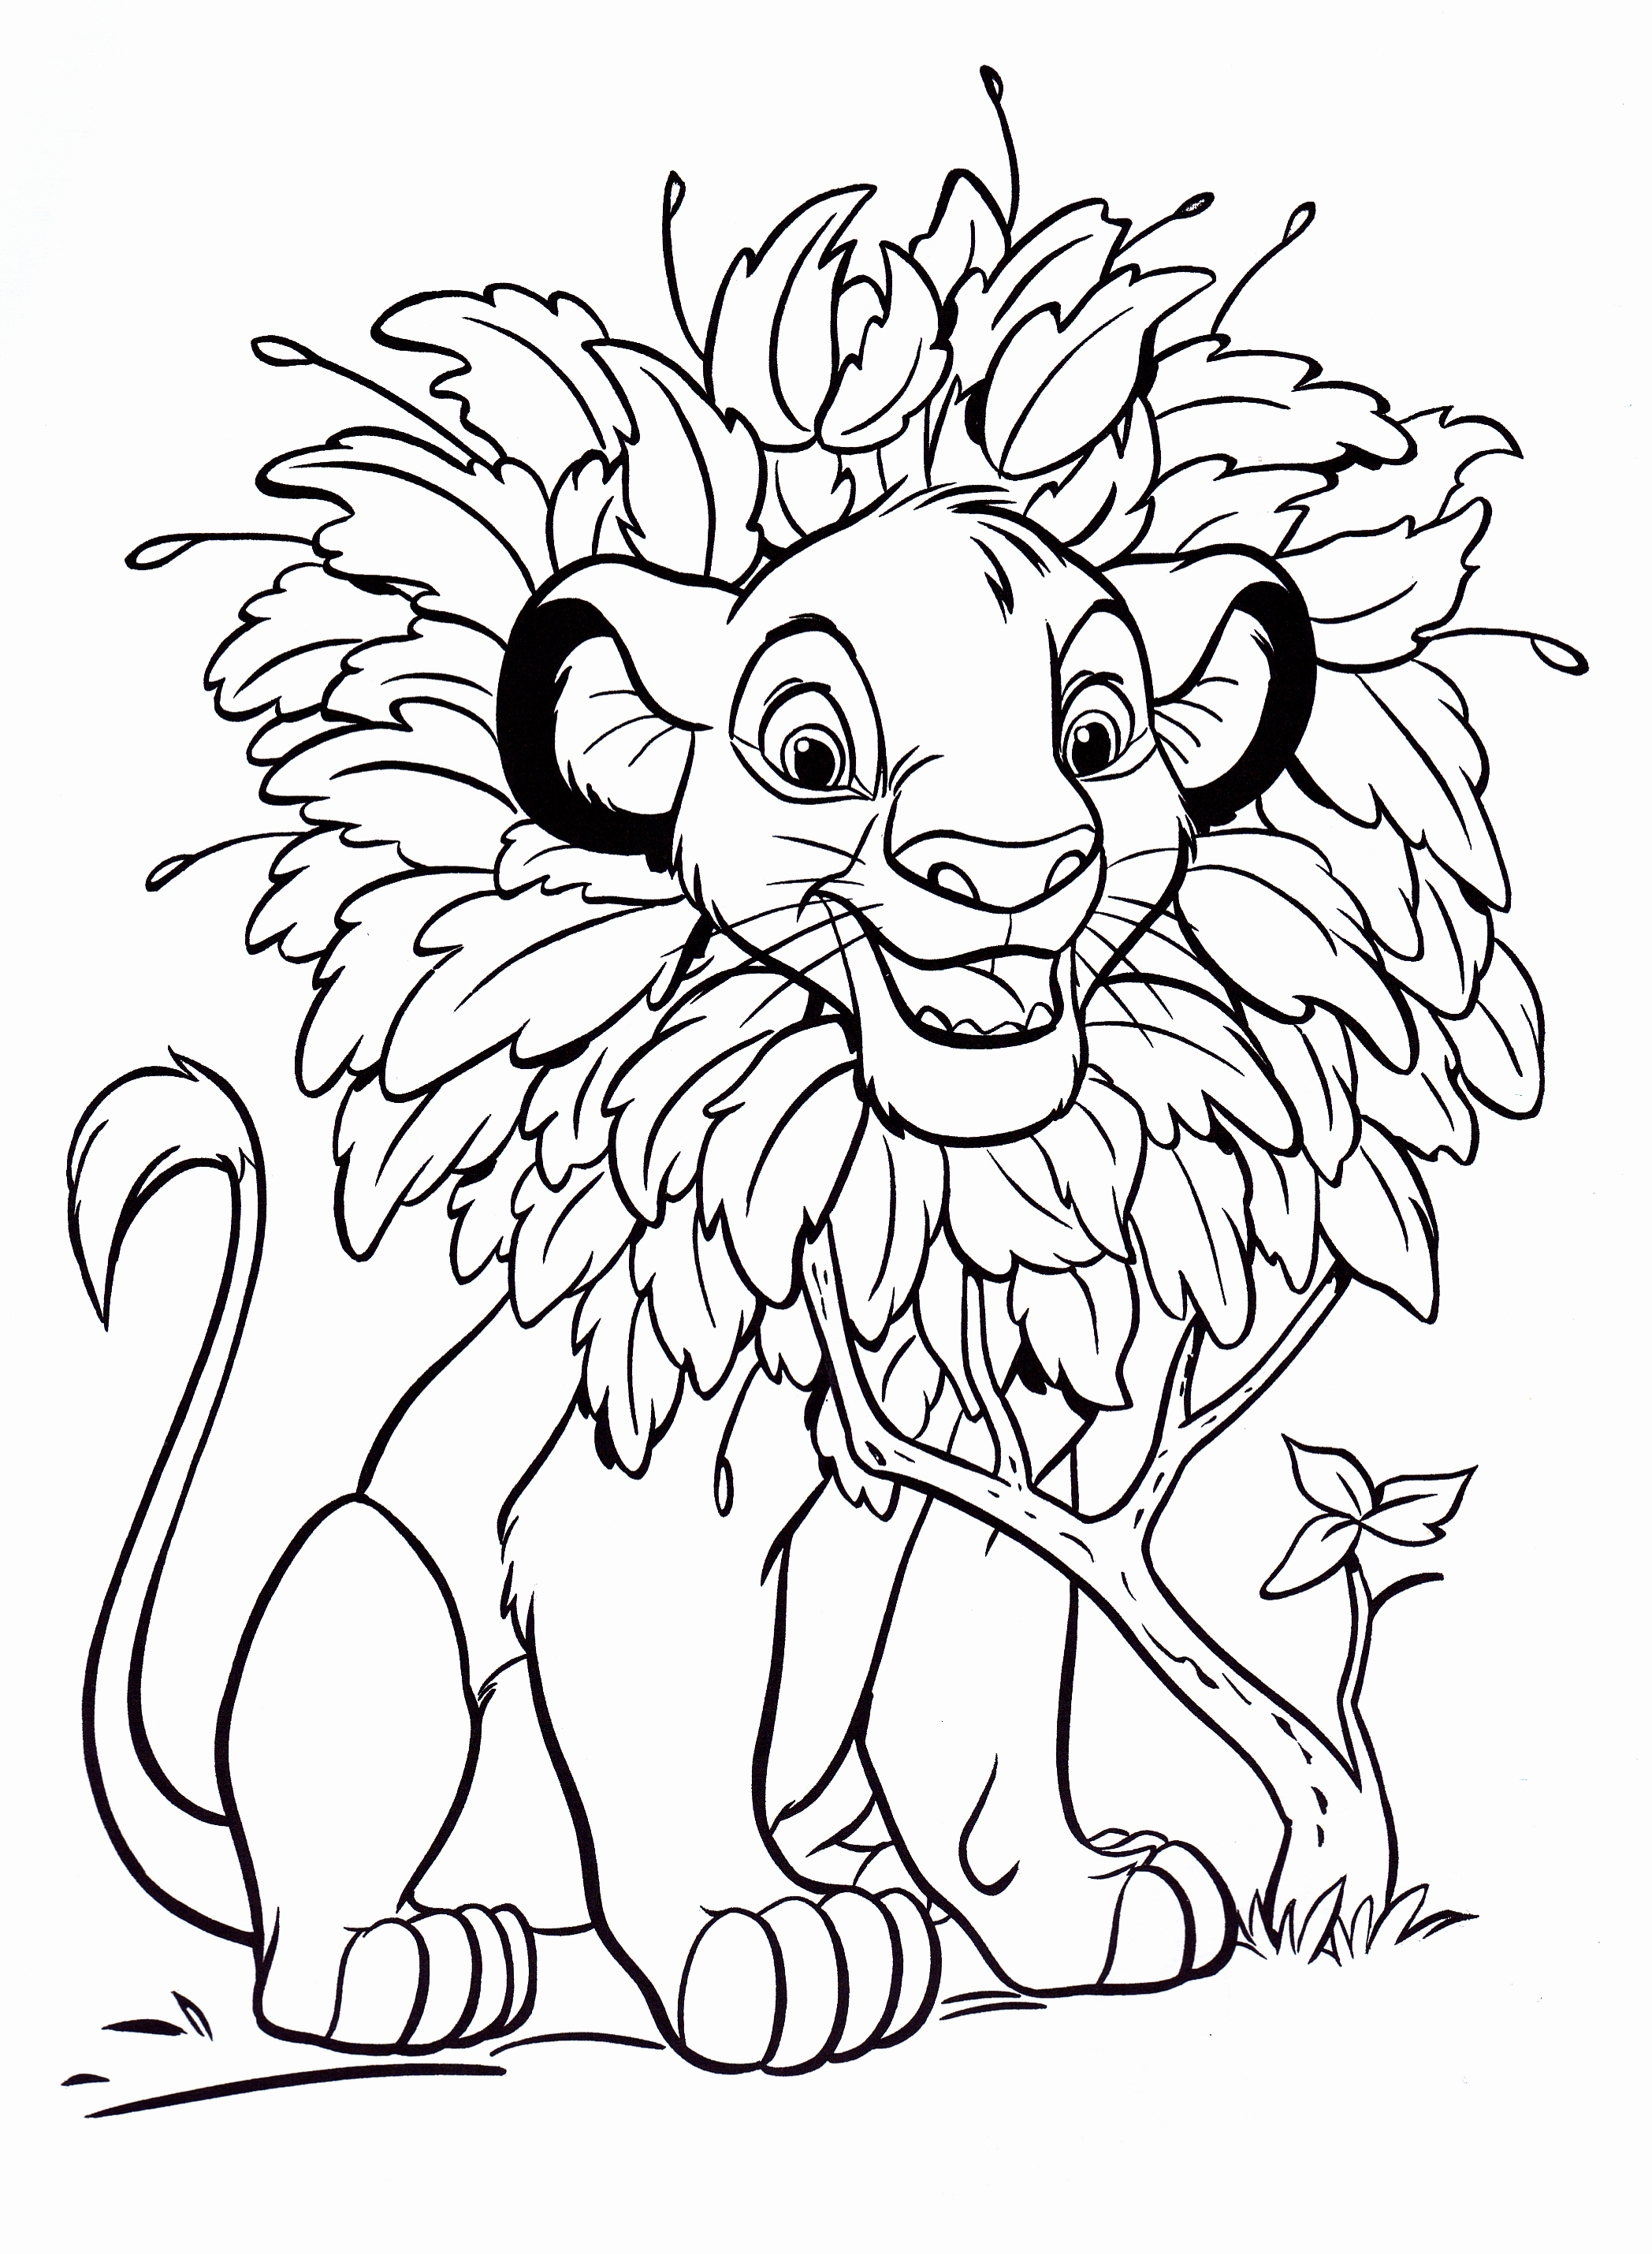 2096x2859 Disney Animals Coloring Pages Walt Disney Coloring Pages Stitch